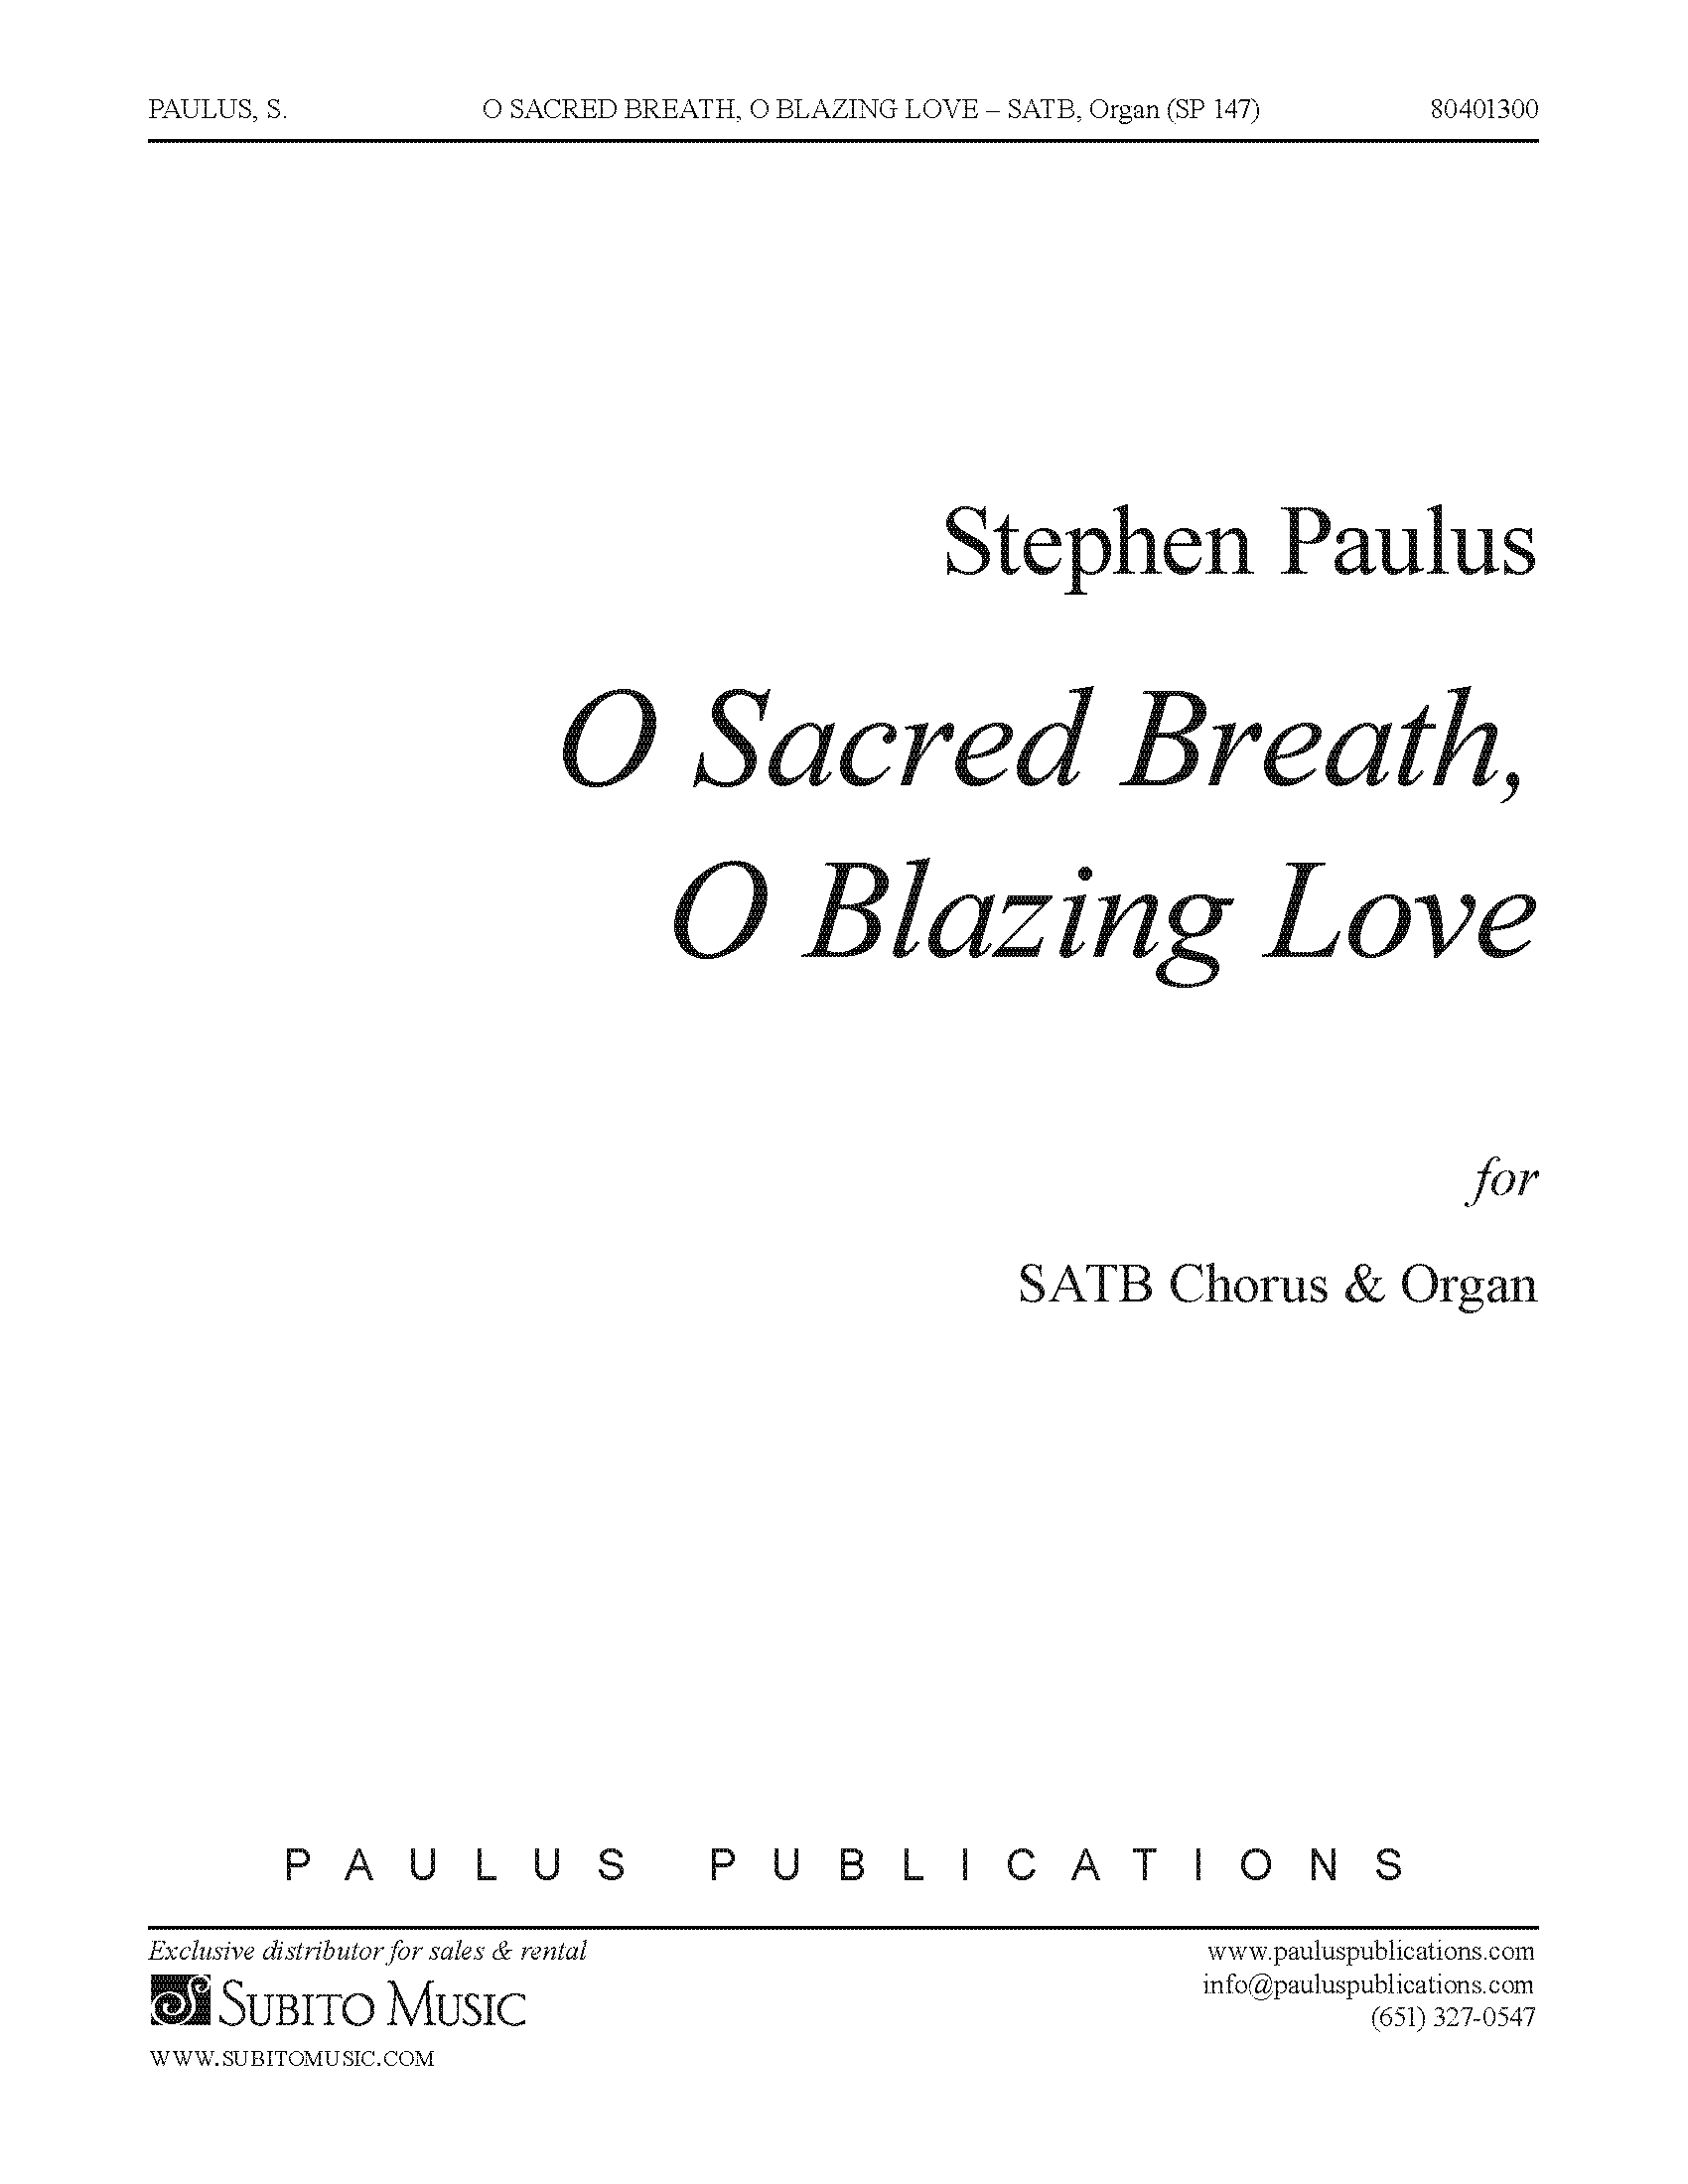 O Sacred Breath, O Blazing Love for SATB Chorus & Organ